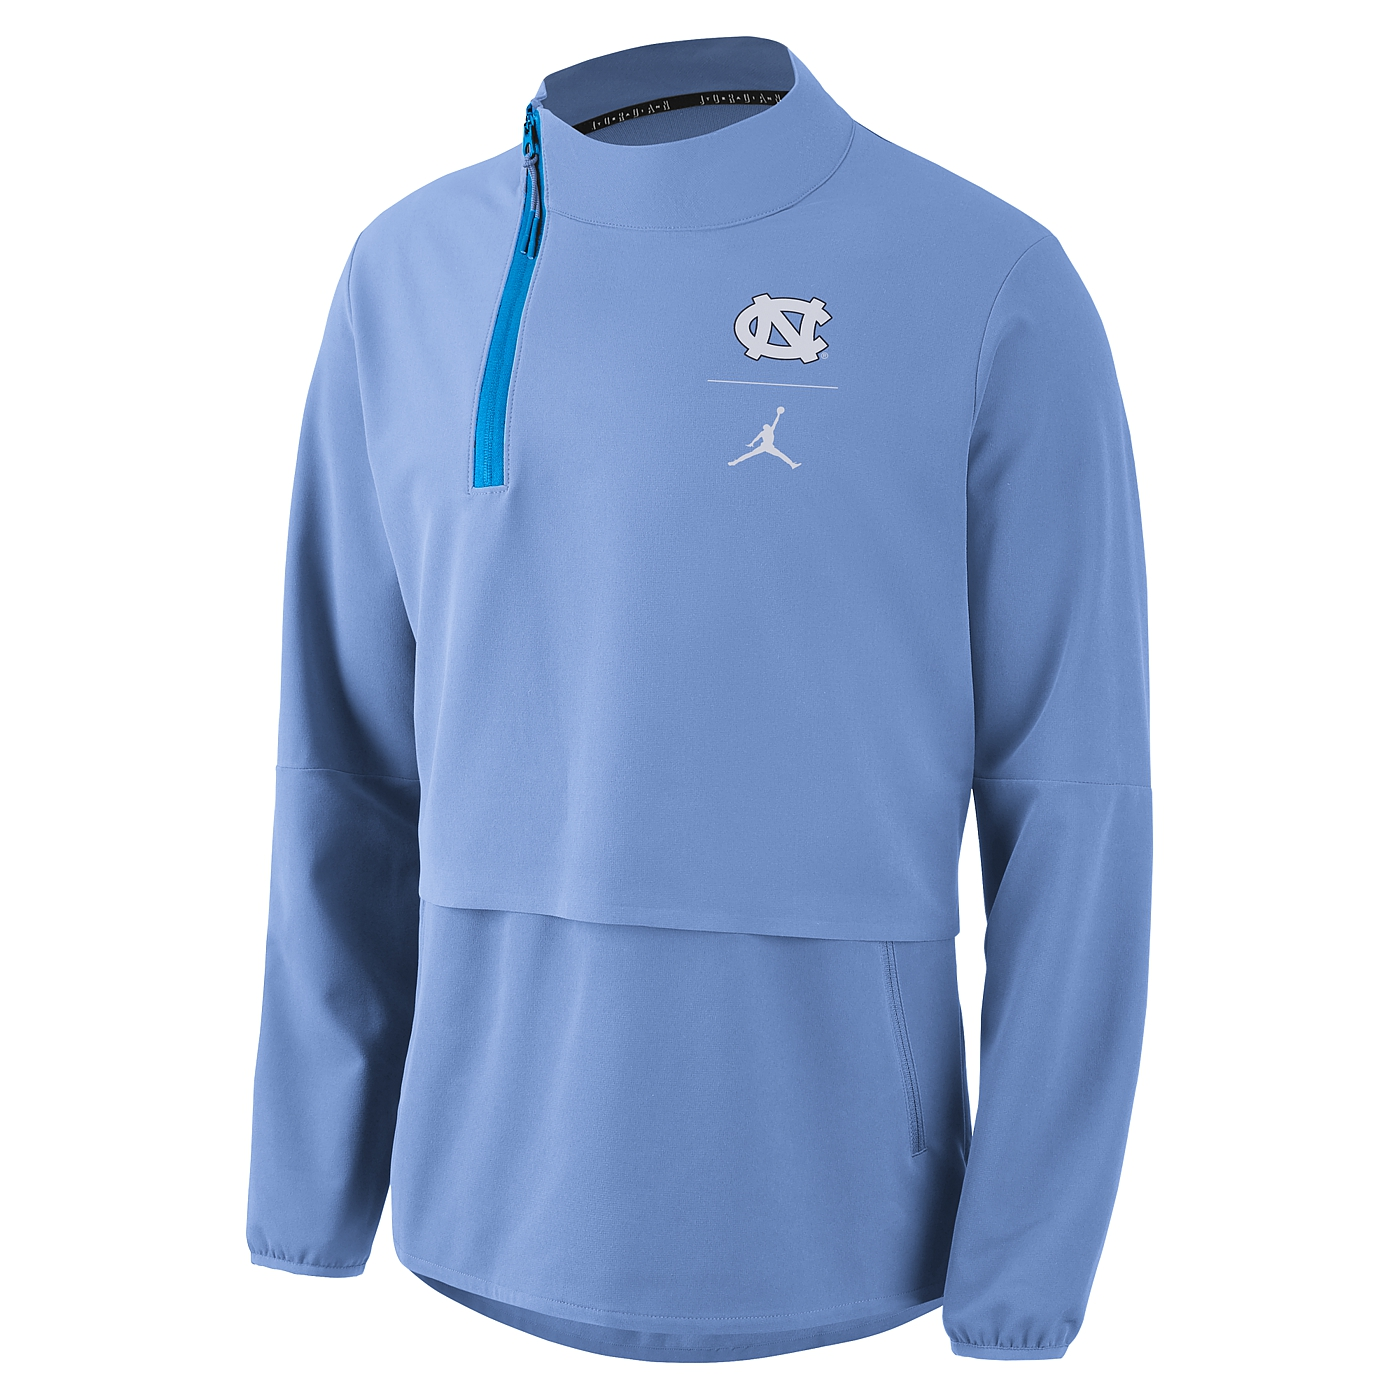 6bb475f05546 Johnny T-shirt - North Carolina Tar Heels - Nike Jumpman Tech 1 4-Zip  Jordan Jacket (CB) by Nike